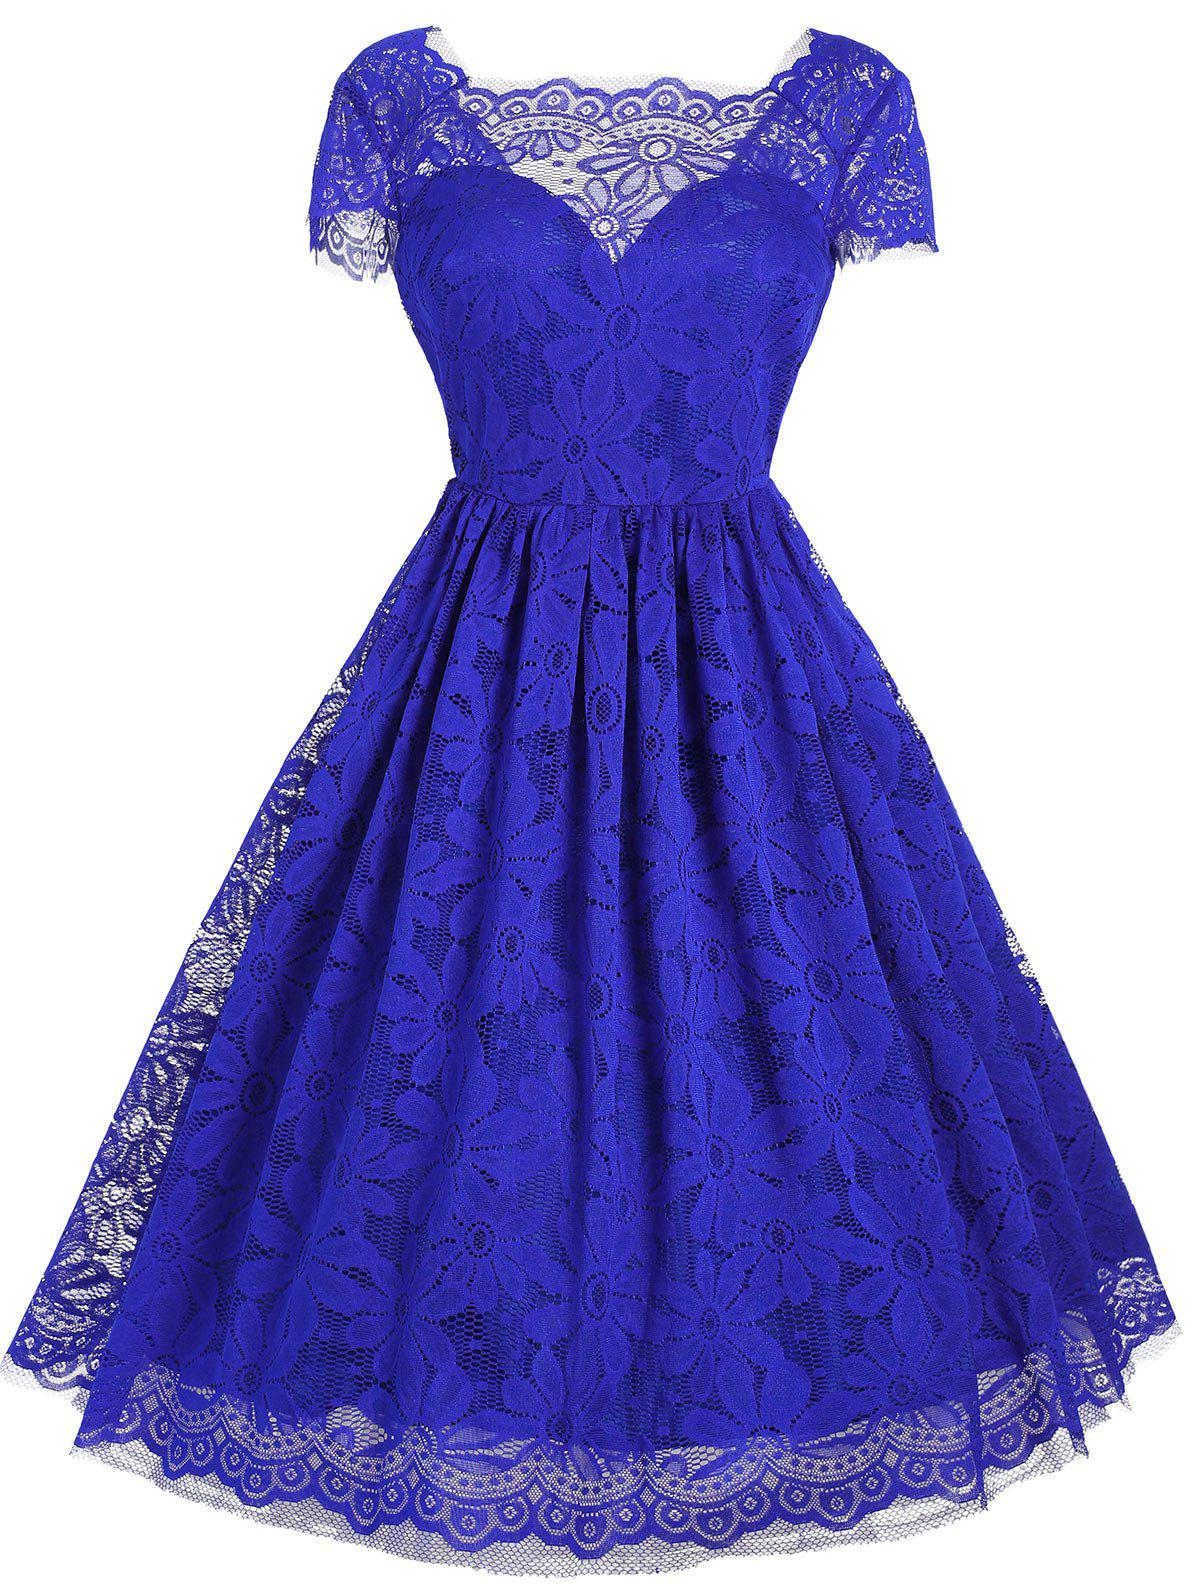 Vintage Square Neck Lace Dress - BLUE S